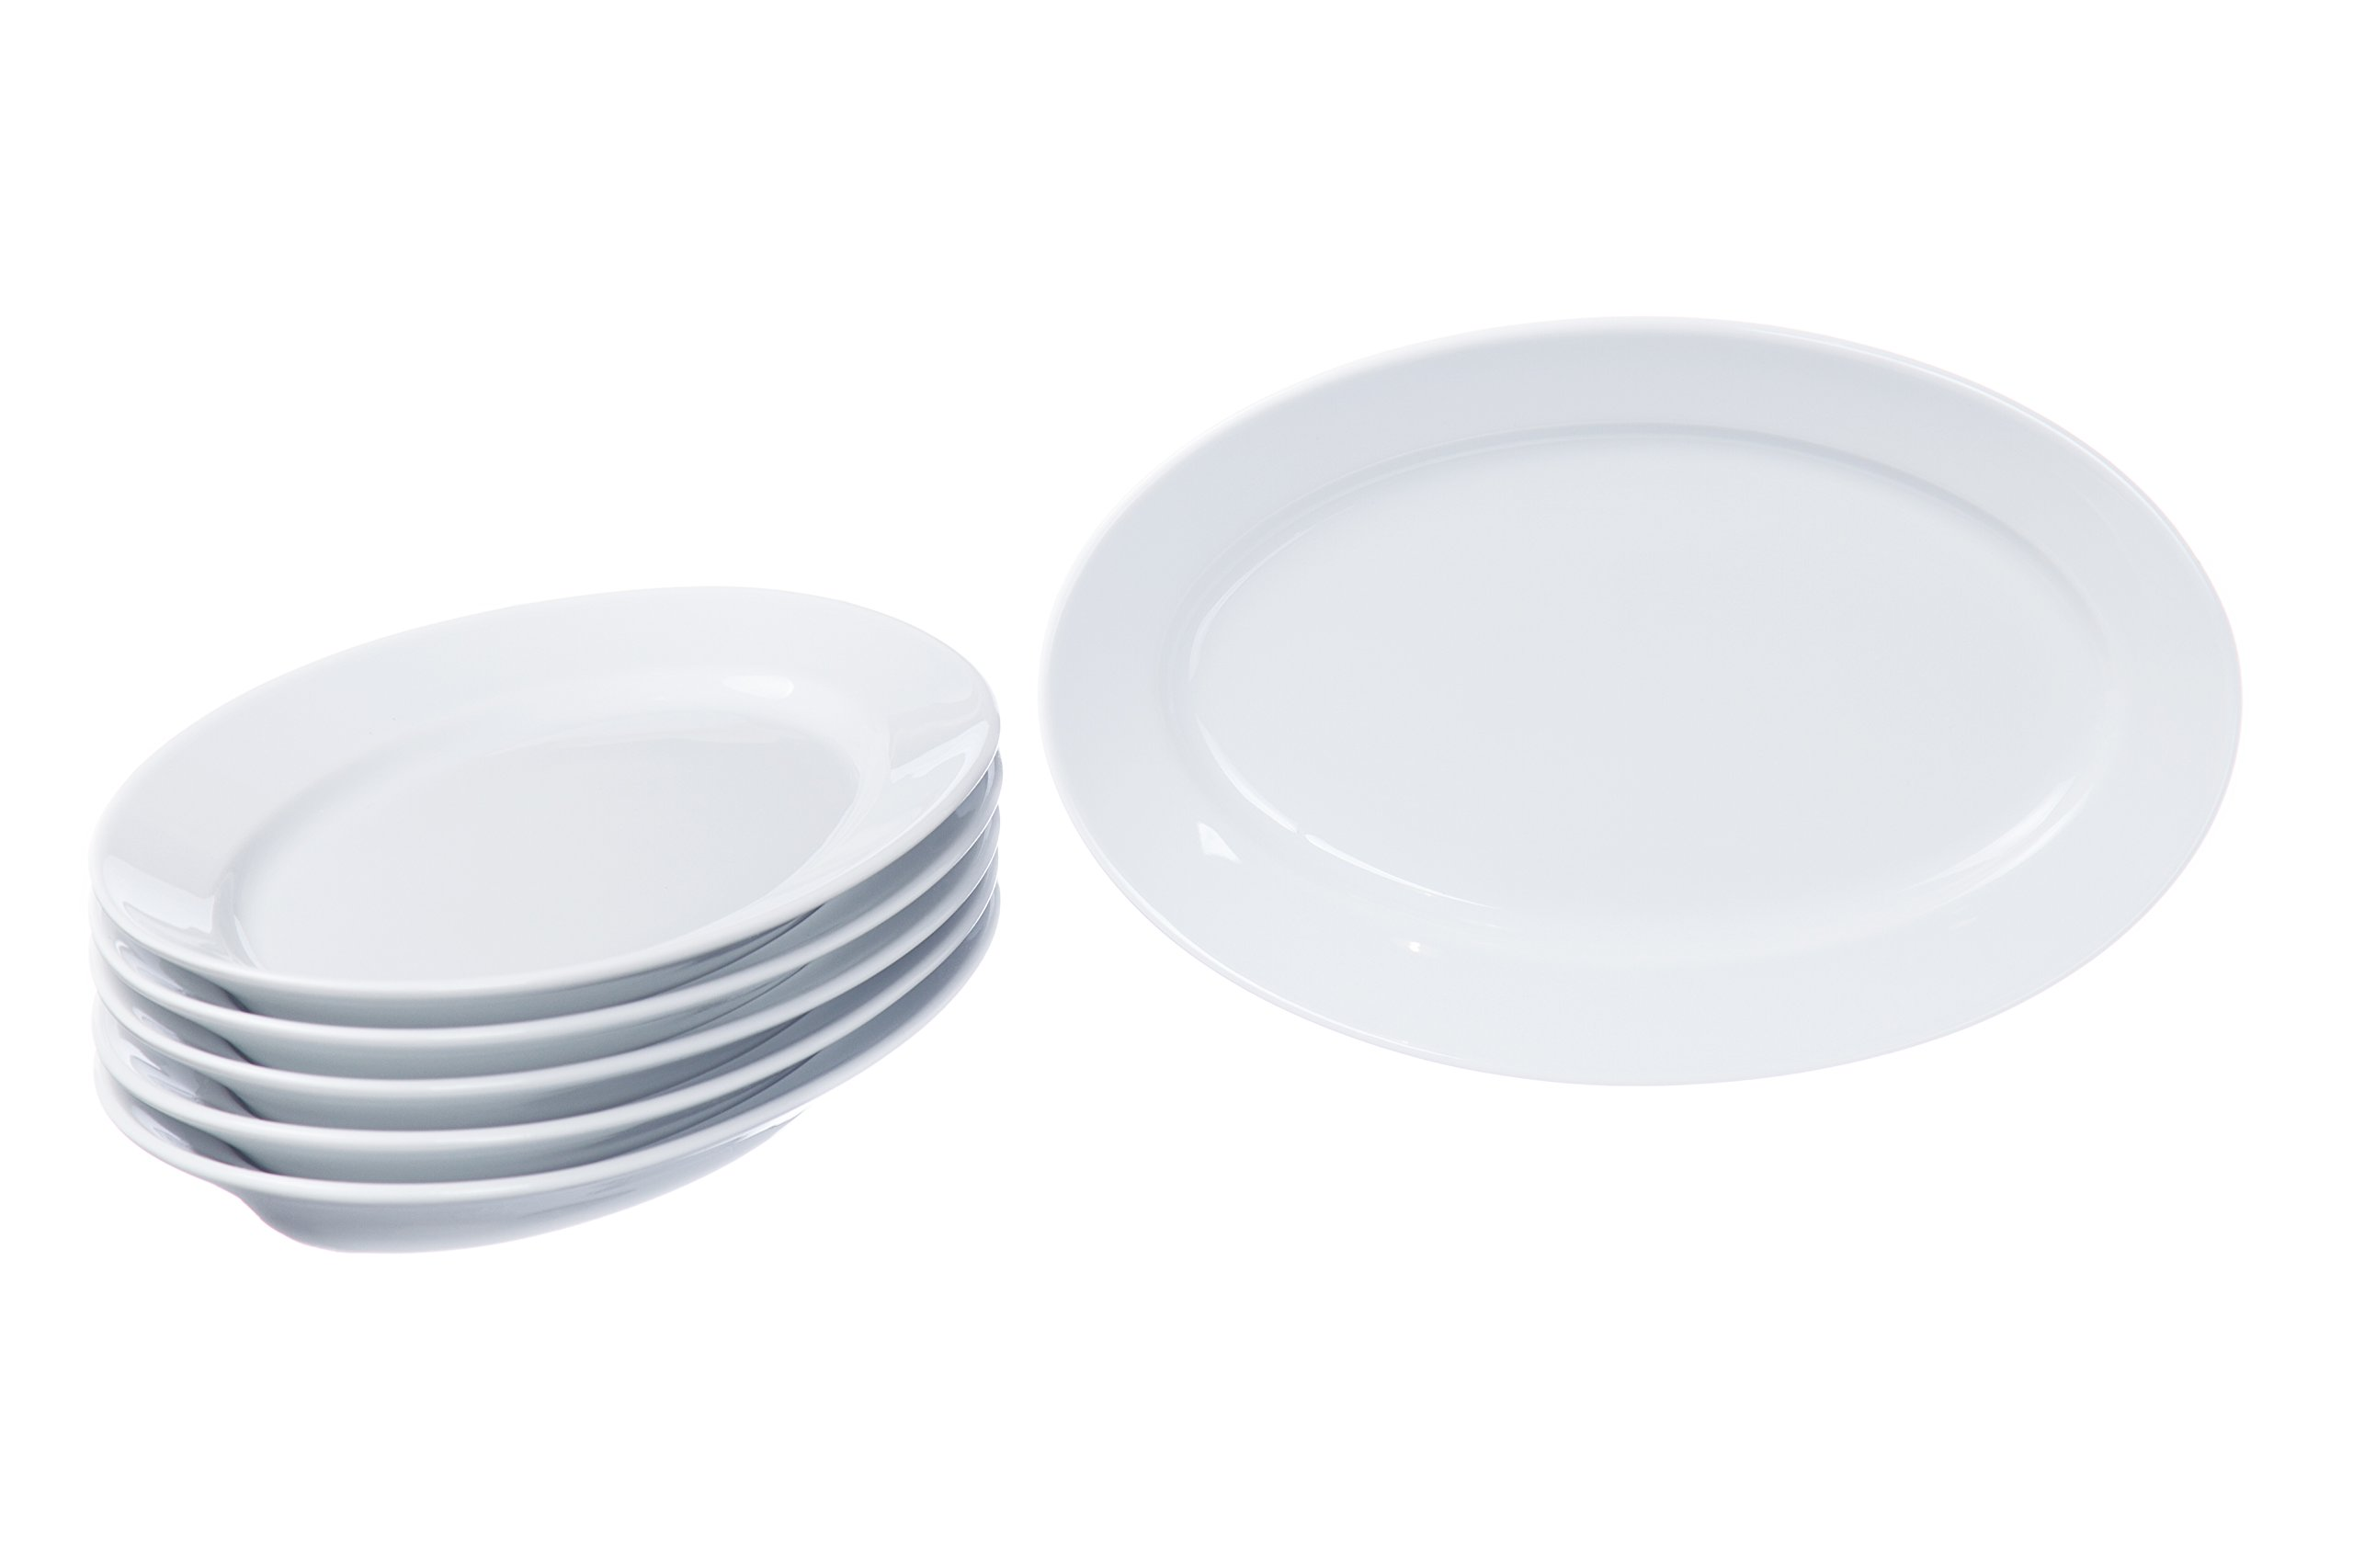 Oval Serving/Dinner Platters - Dinner Plates Set - Trays for Parties (3 size), Durable White Porcelain, Restaurant&Hotel Quality (3, 14.1'' x 9.8'')